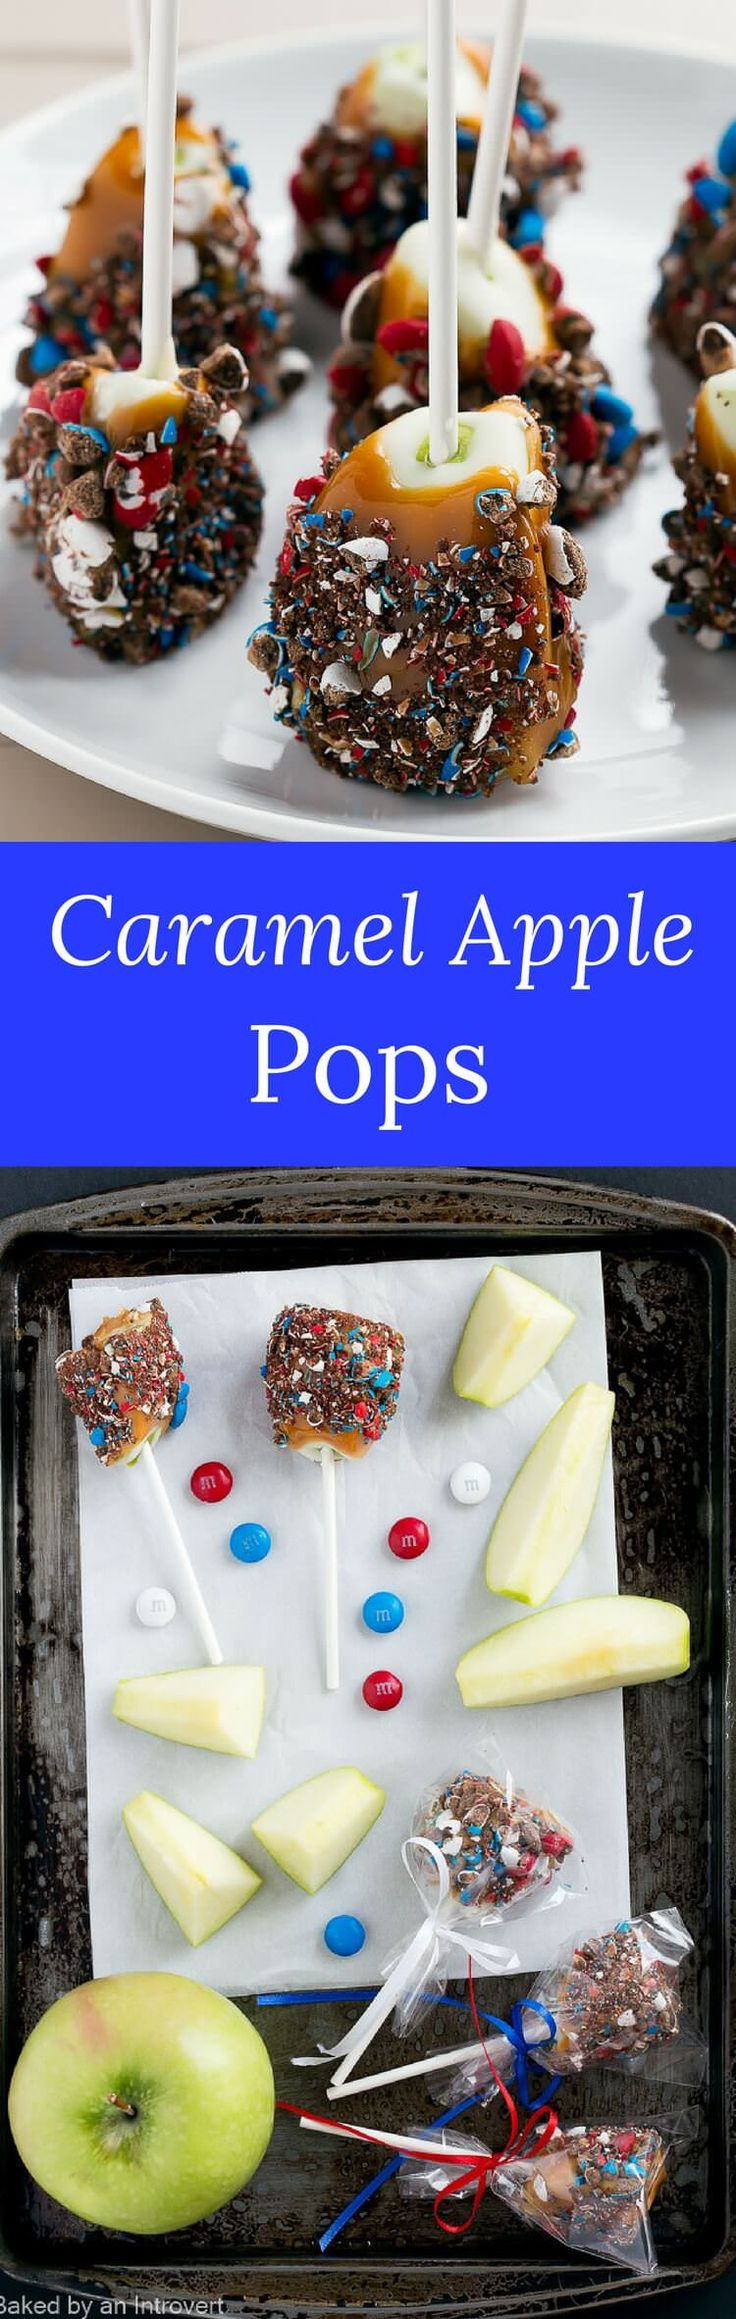 Light up your summer entertaining with these easy patriotic caramel apple pops! It's so much fun to make caramel apples at home. via @introvertbaker